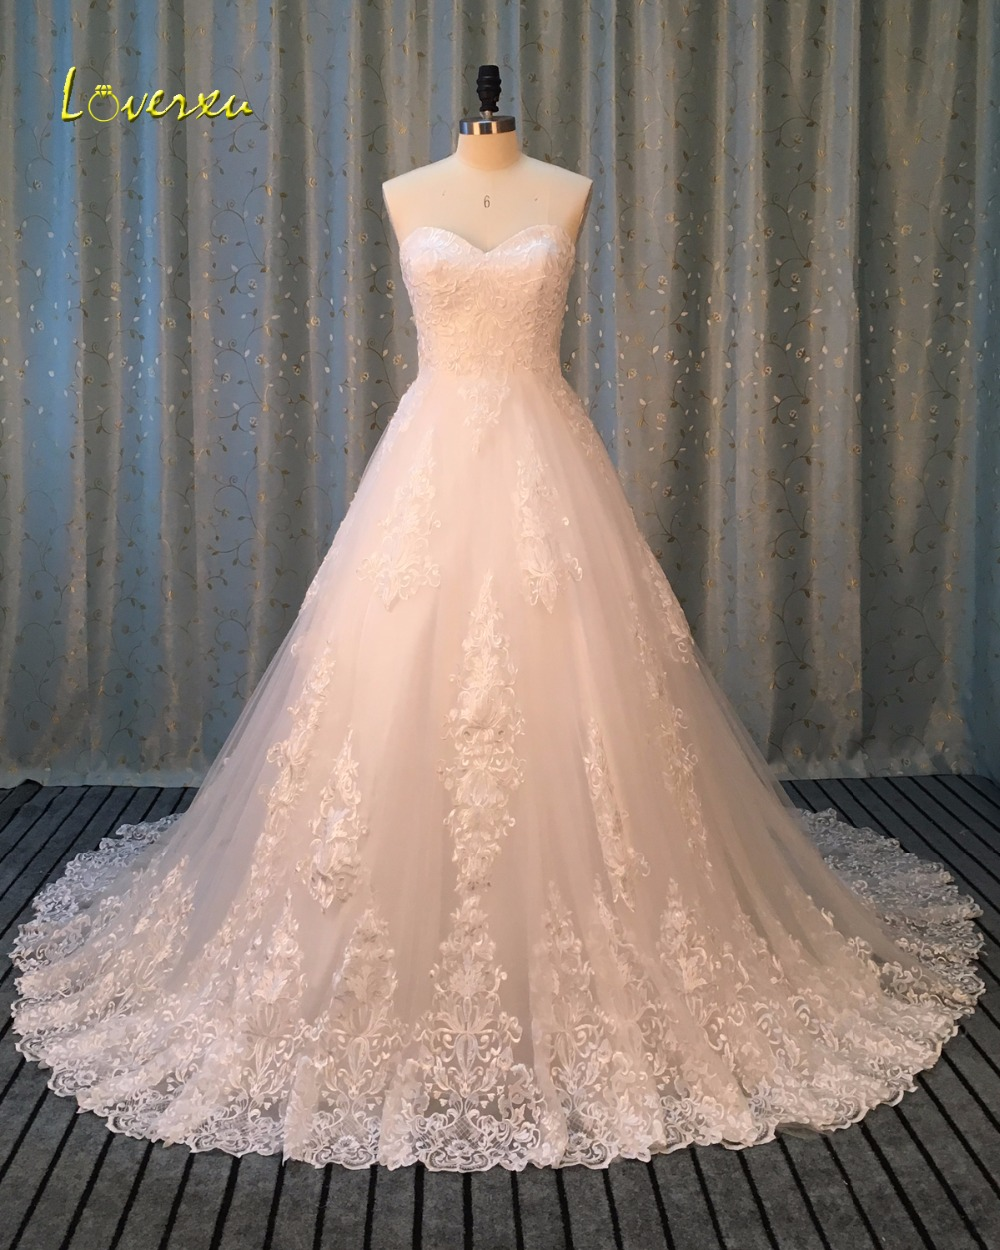 Loverxu Romantic Sweetheart A Line Lace Wedding Dresses 2016 Appliques Court Train Vintage Robe De Marriage